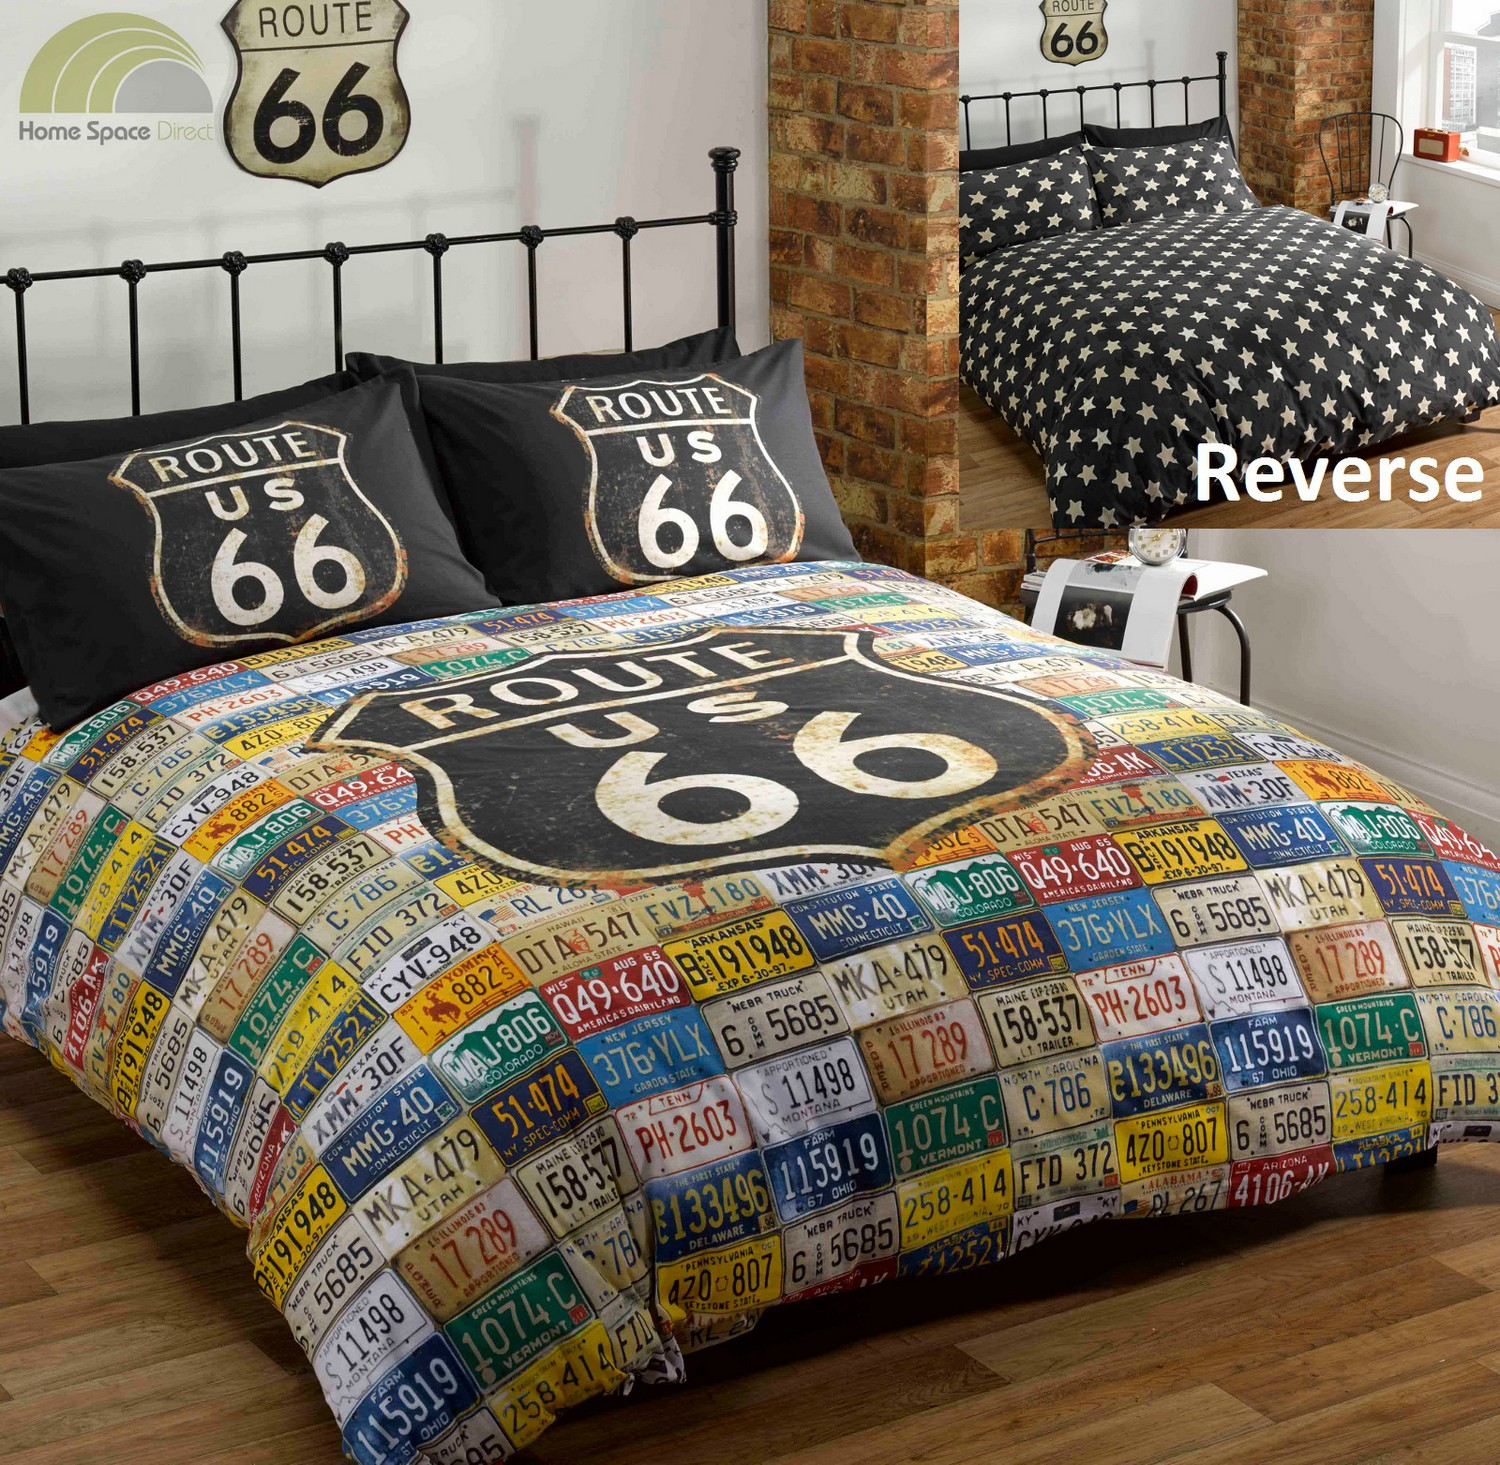 route 66 quilt duvet cover bed set distressed vintage. Black Bedroom Furniture Sets. Home Design Ideas